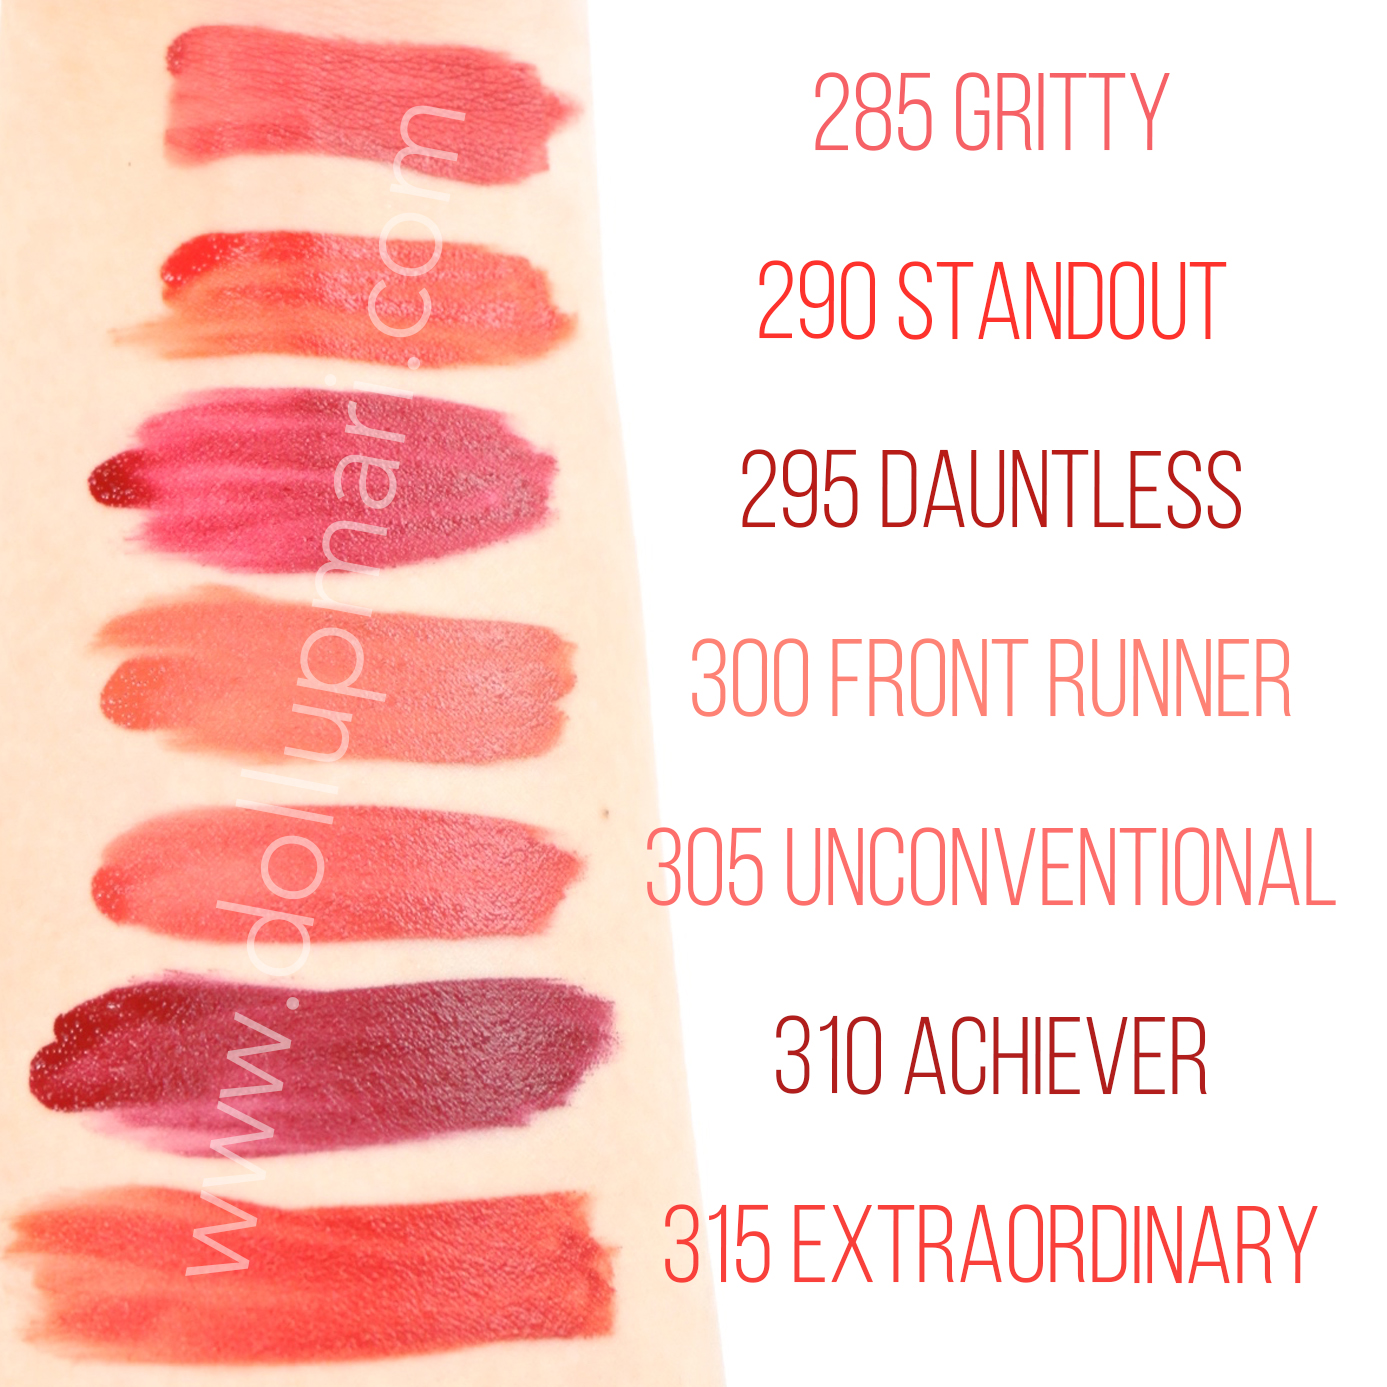 Maybelline Superstay Matte Ink Liquid Lipstick Rogue Reds Swatches